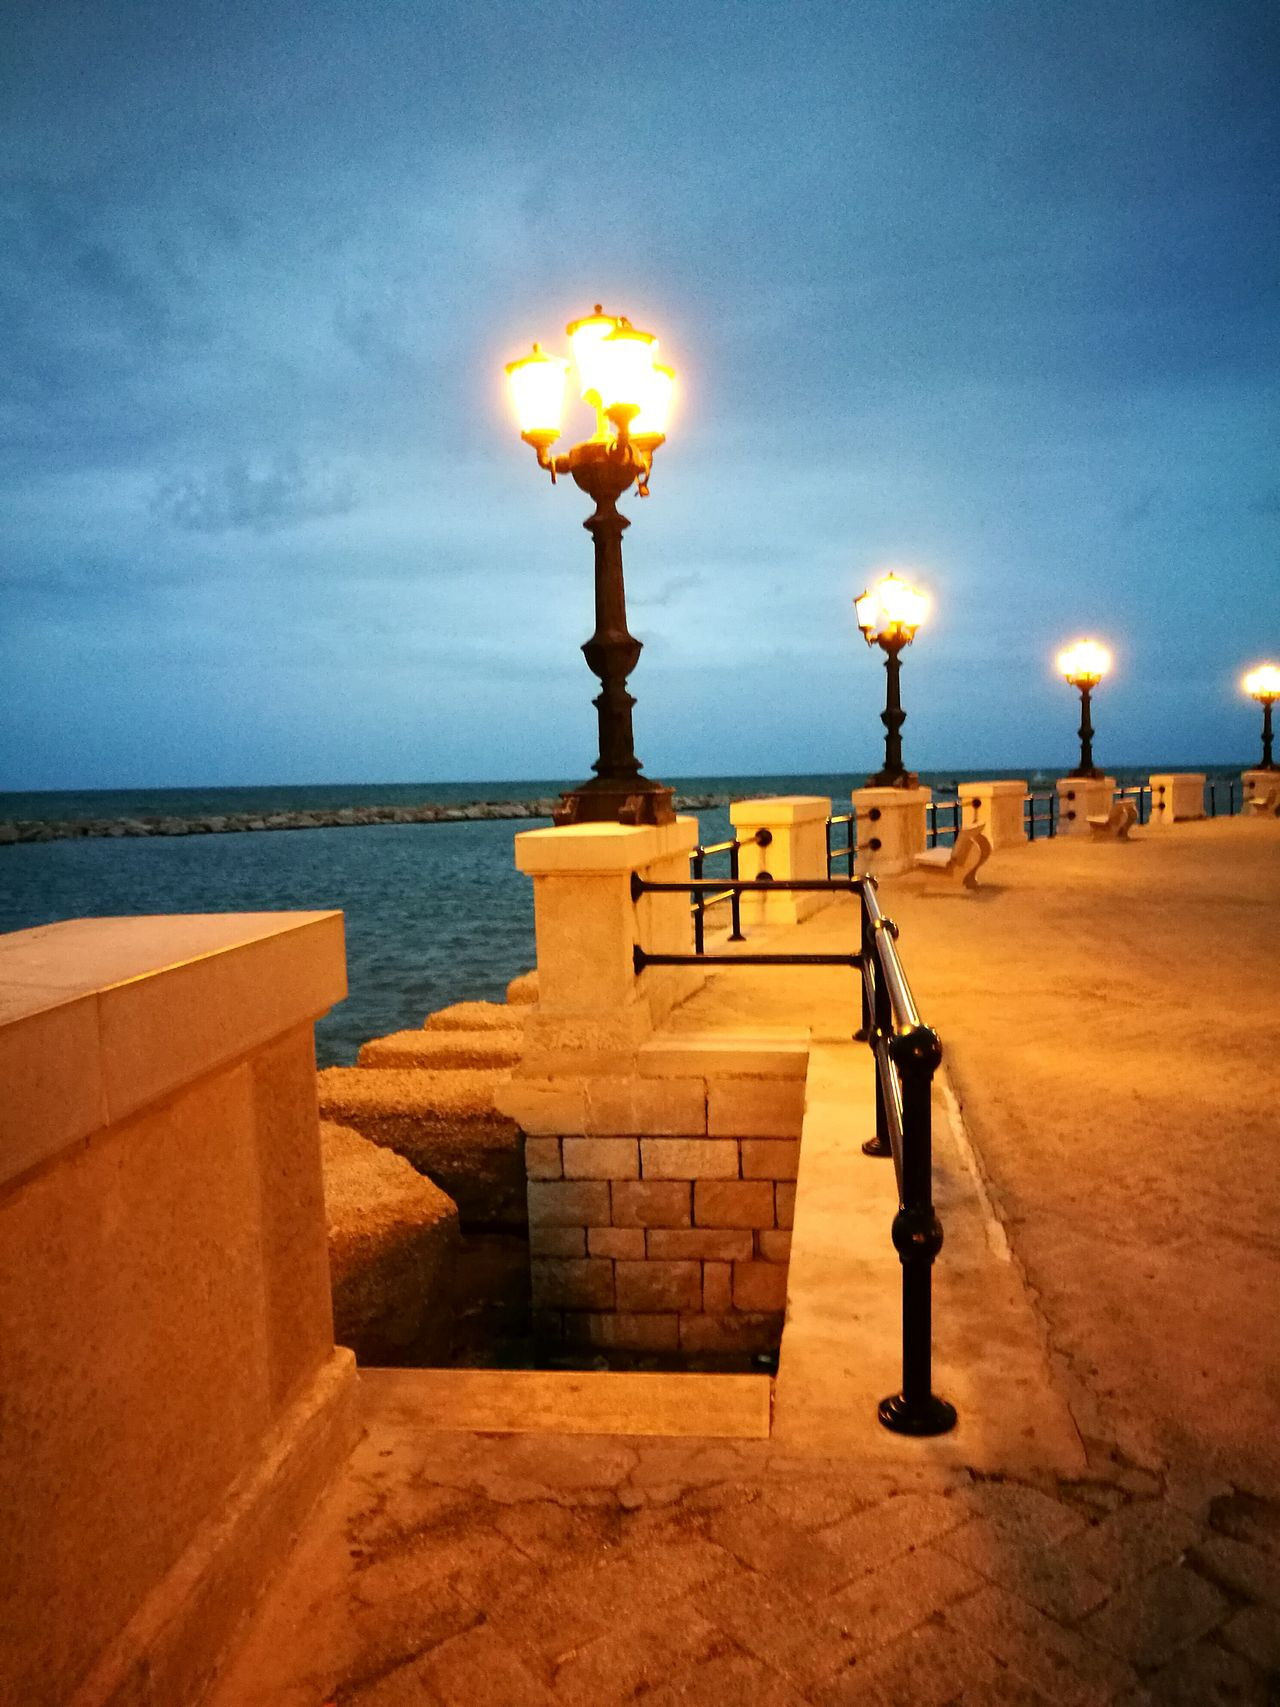 Bari Puglia Lungomare Sea Sky Luci Lampioni Scale  Evening September